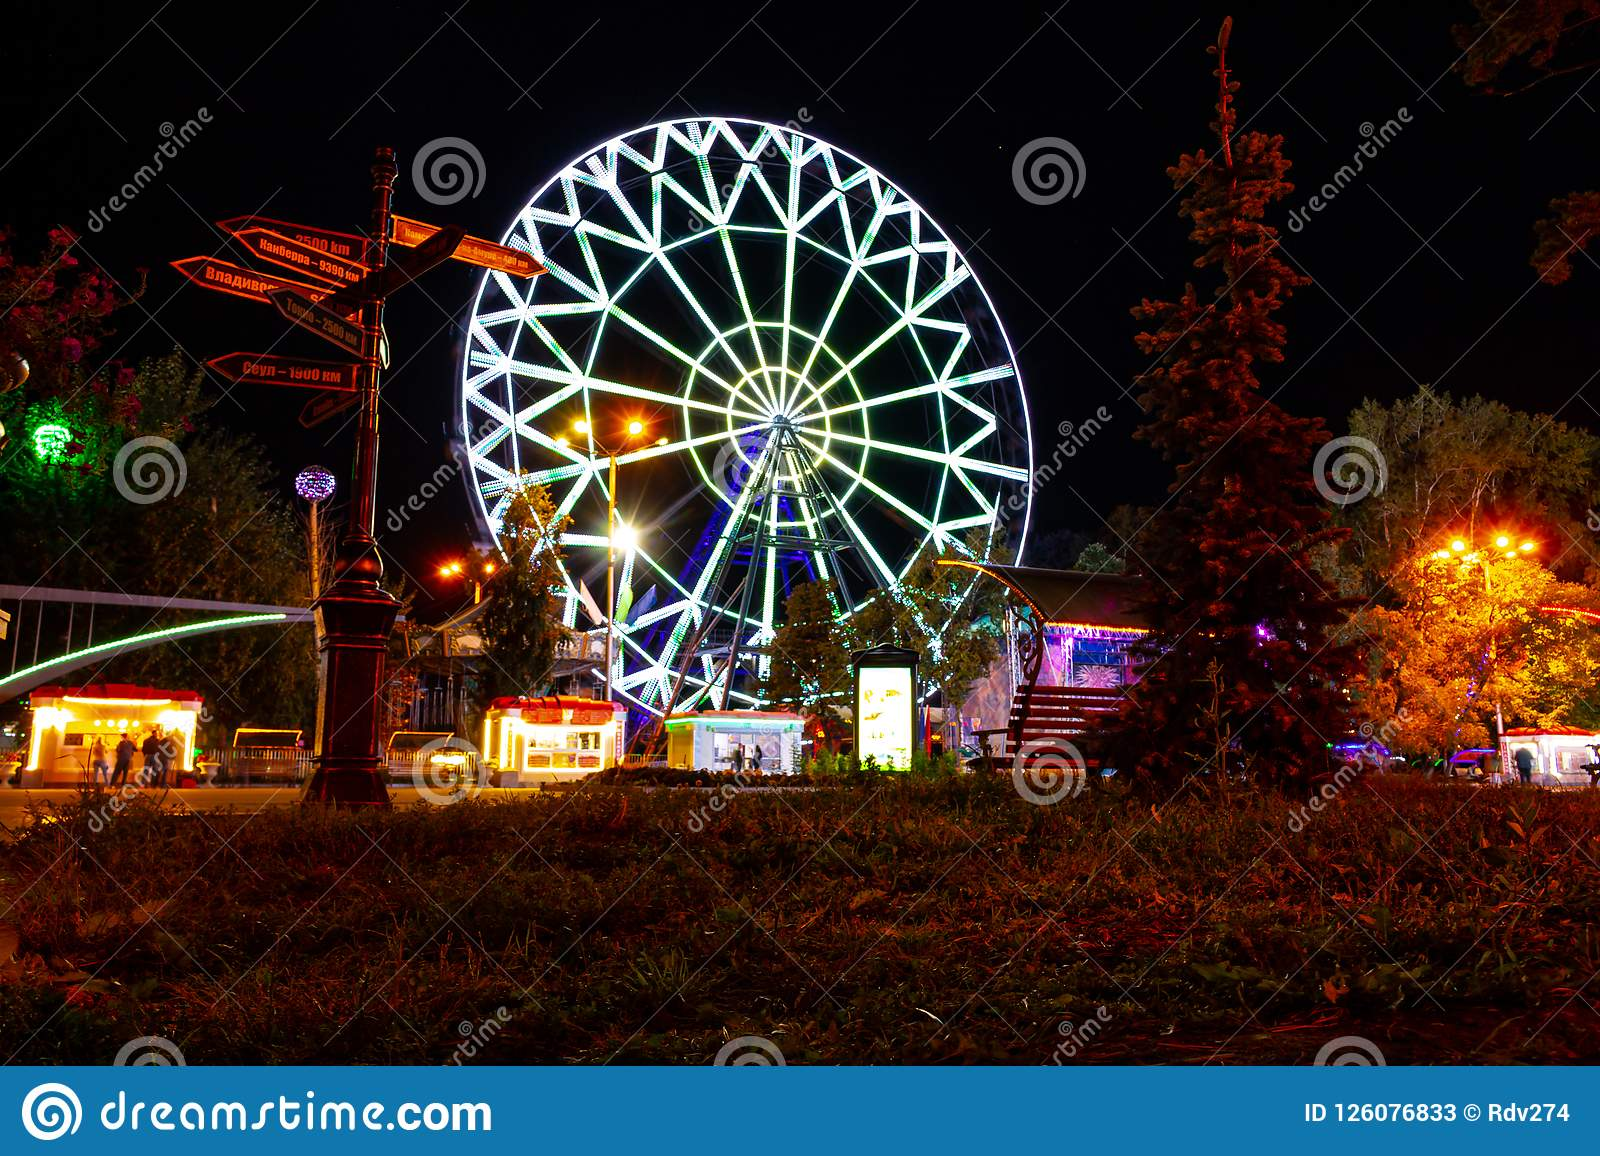 Ferris wheel on the banks of the Amur river in Khabarovsk. Russia.